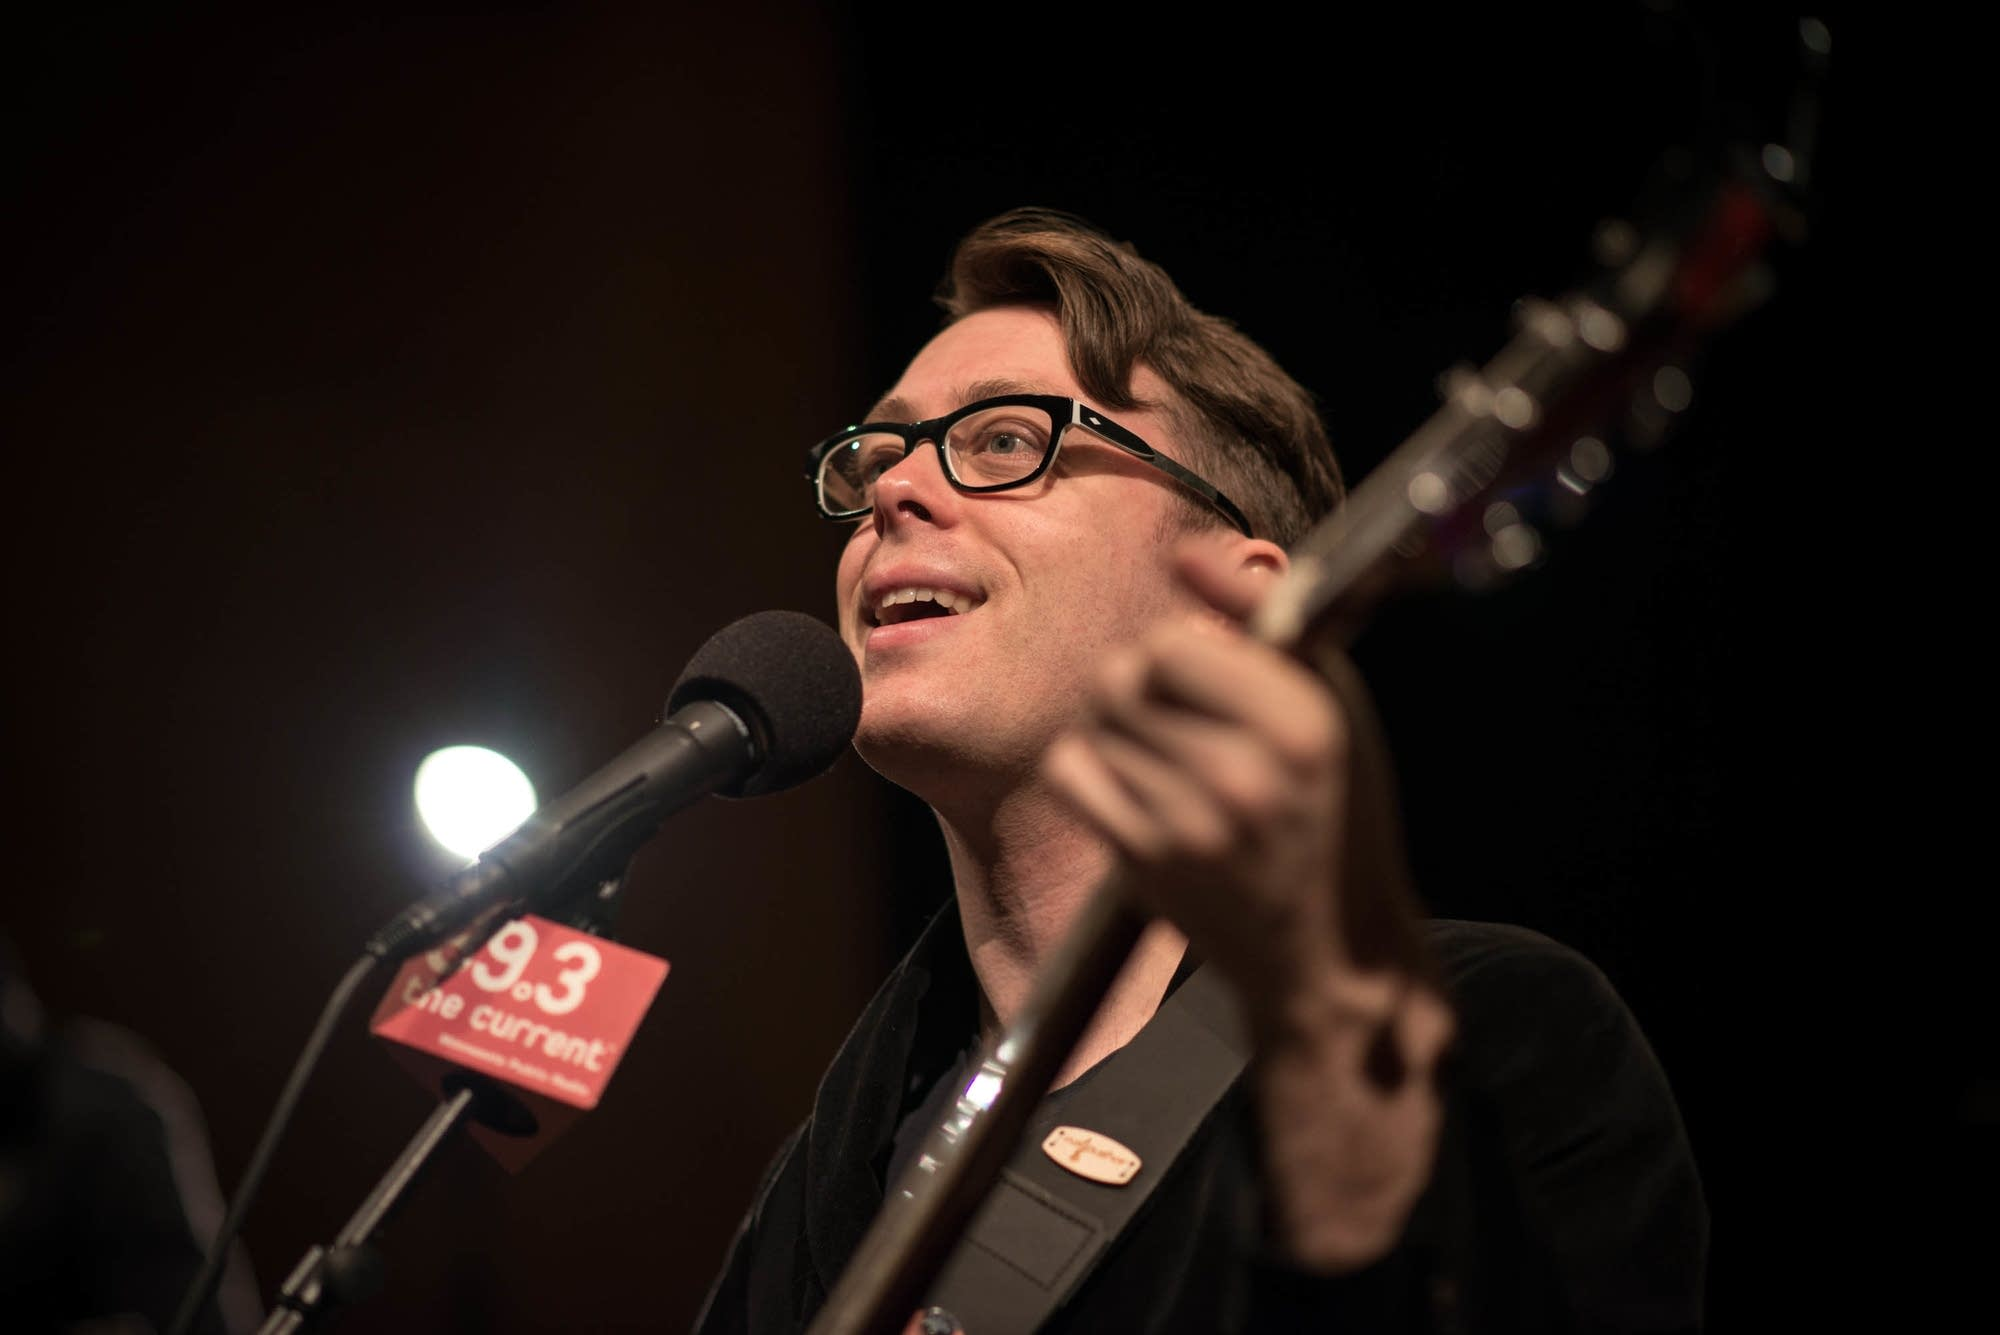 jeremy messersmith forum mic 3